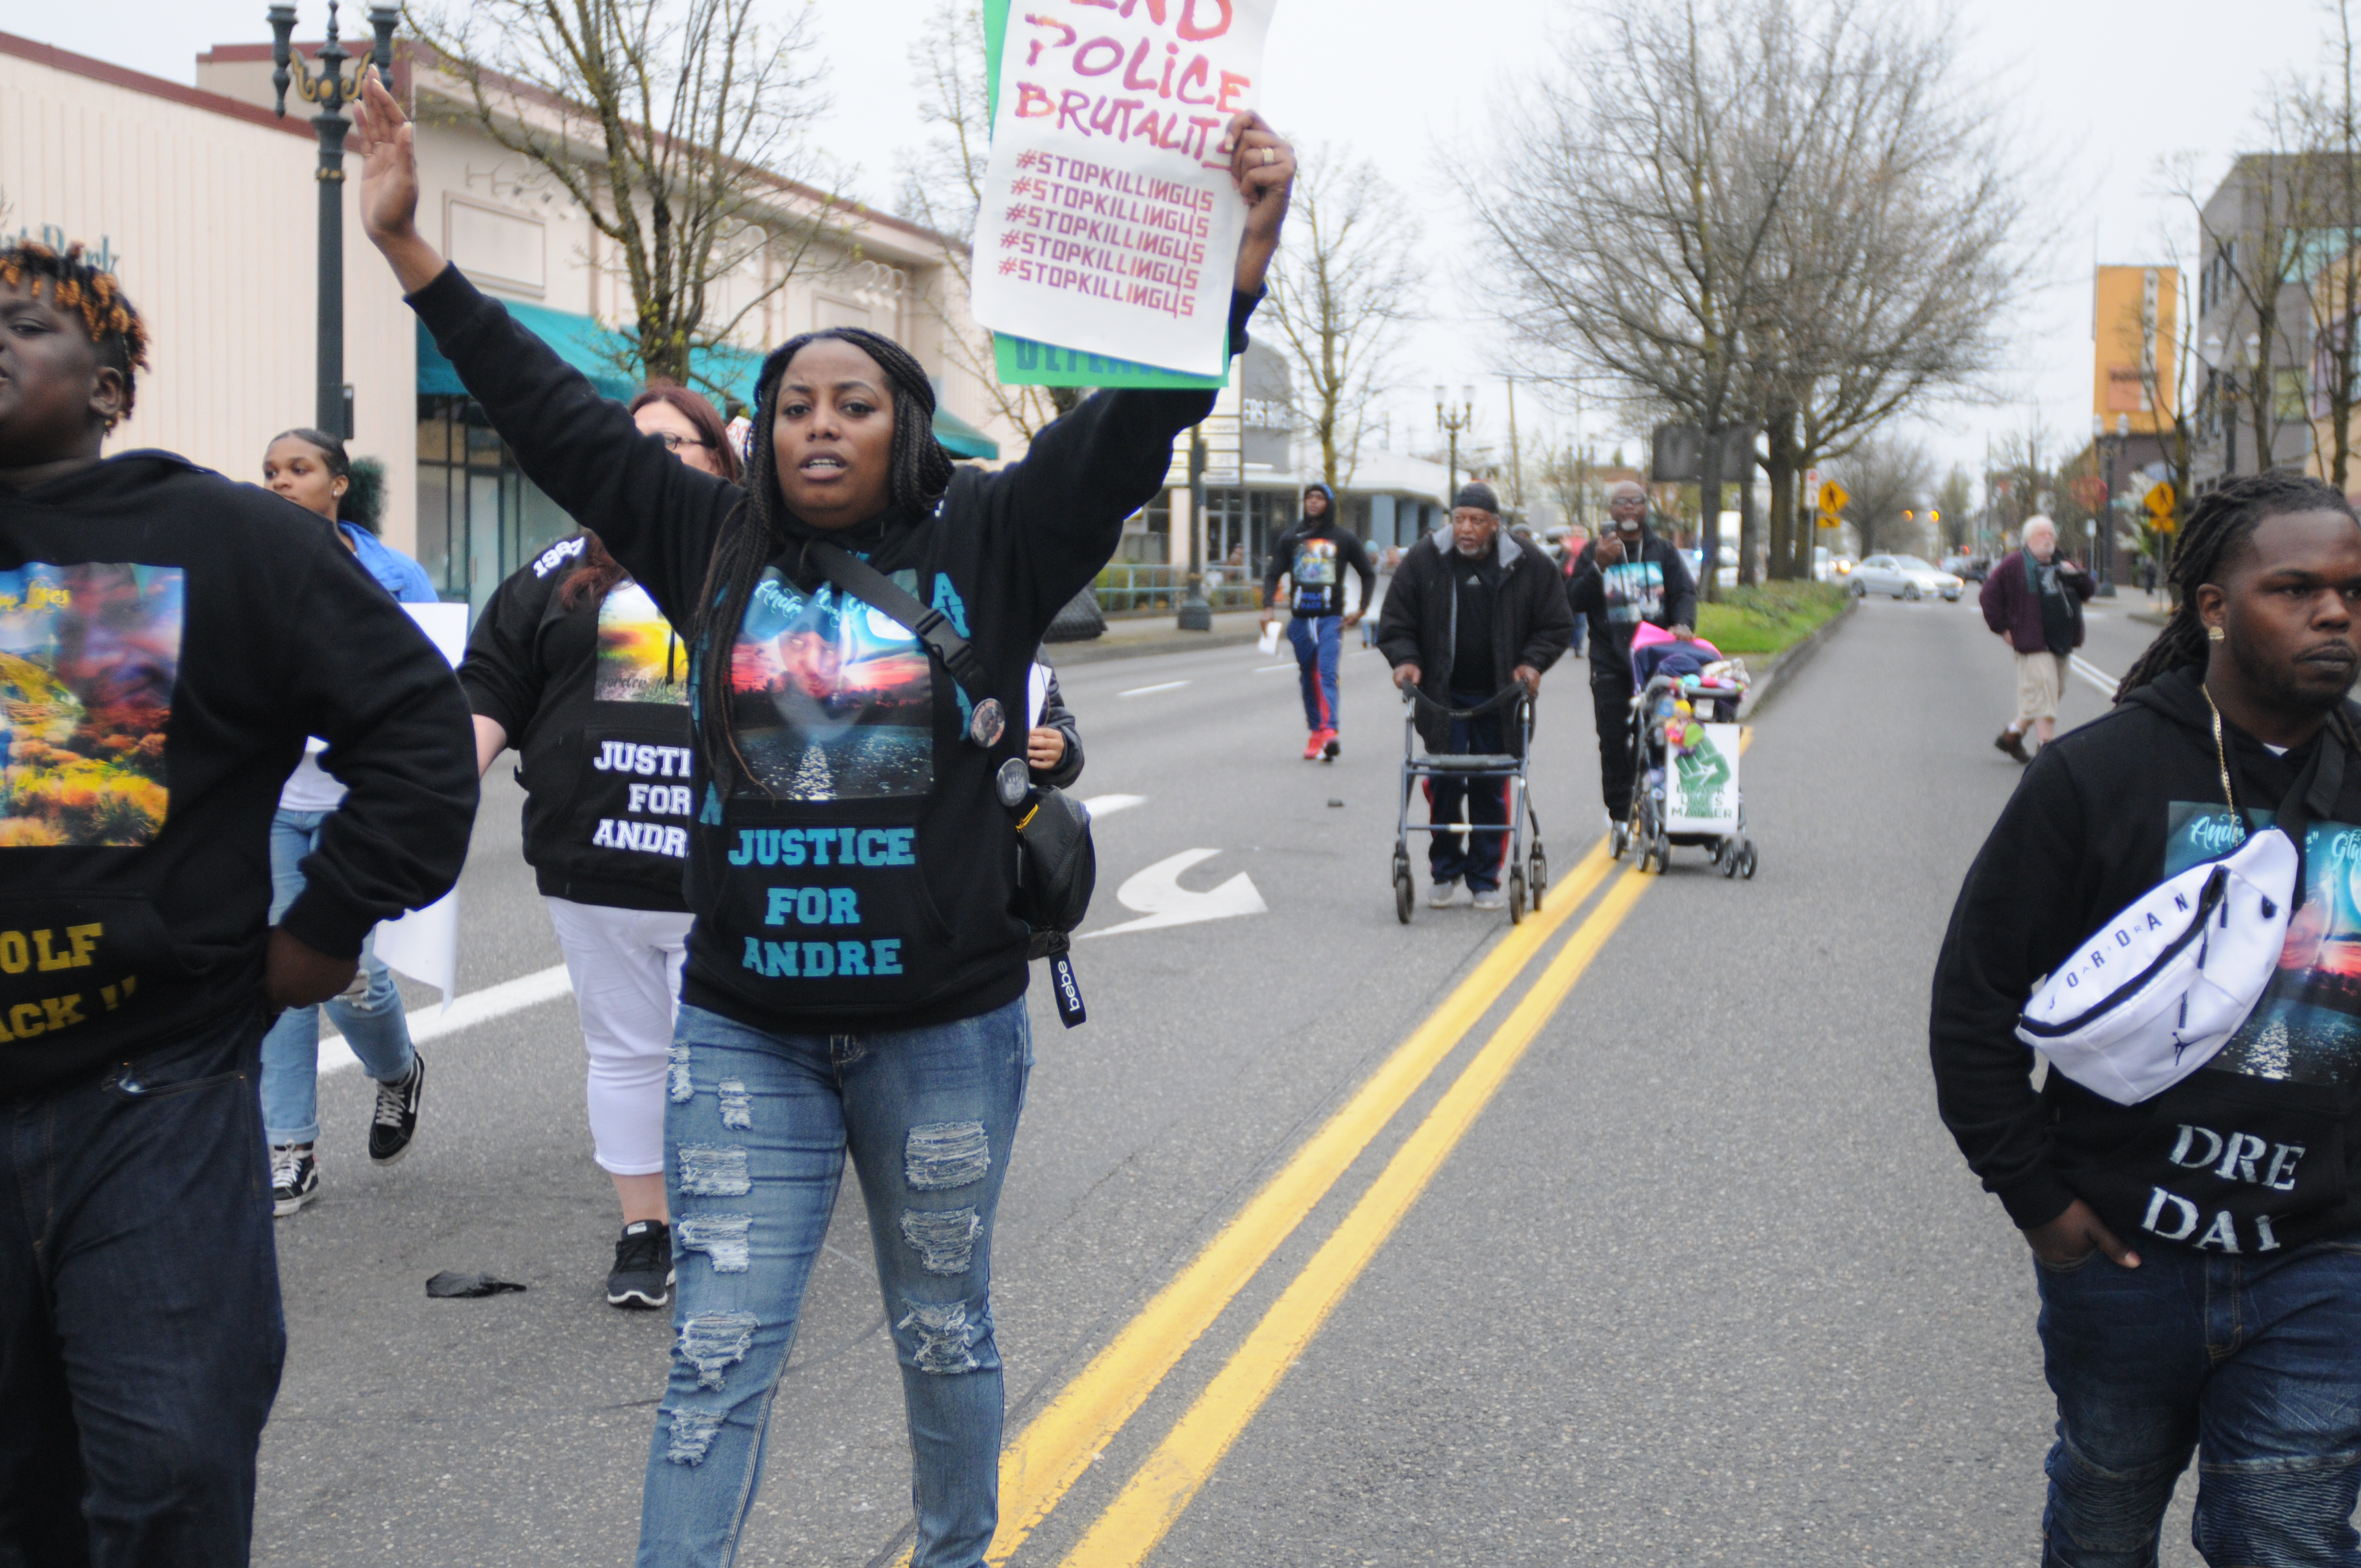 Supporters urge Portland police chief, mayor to send condolences to relatives of people killed by police